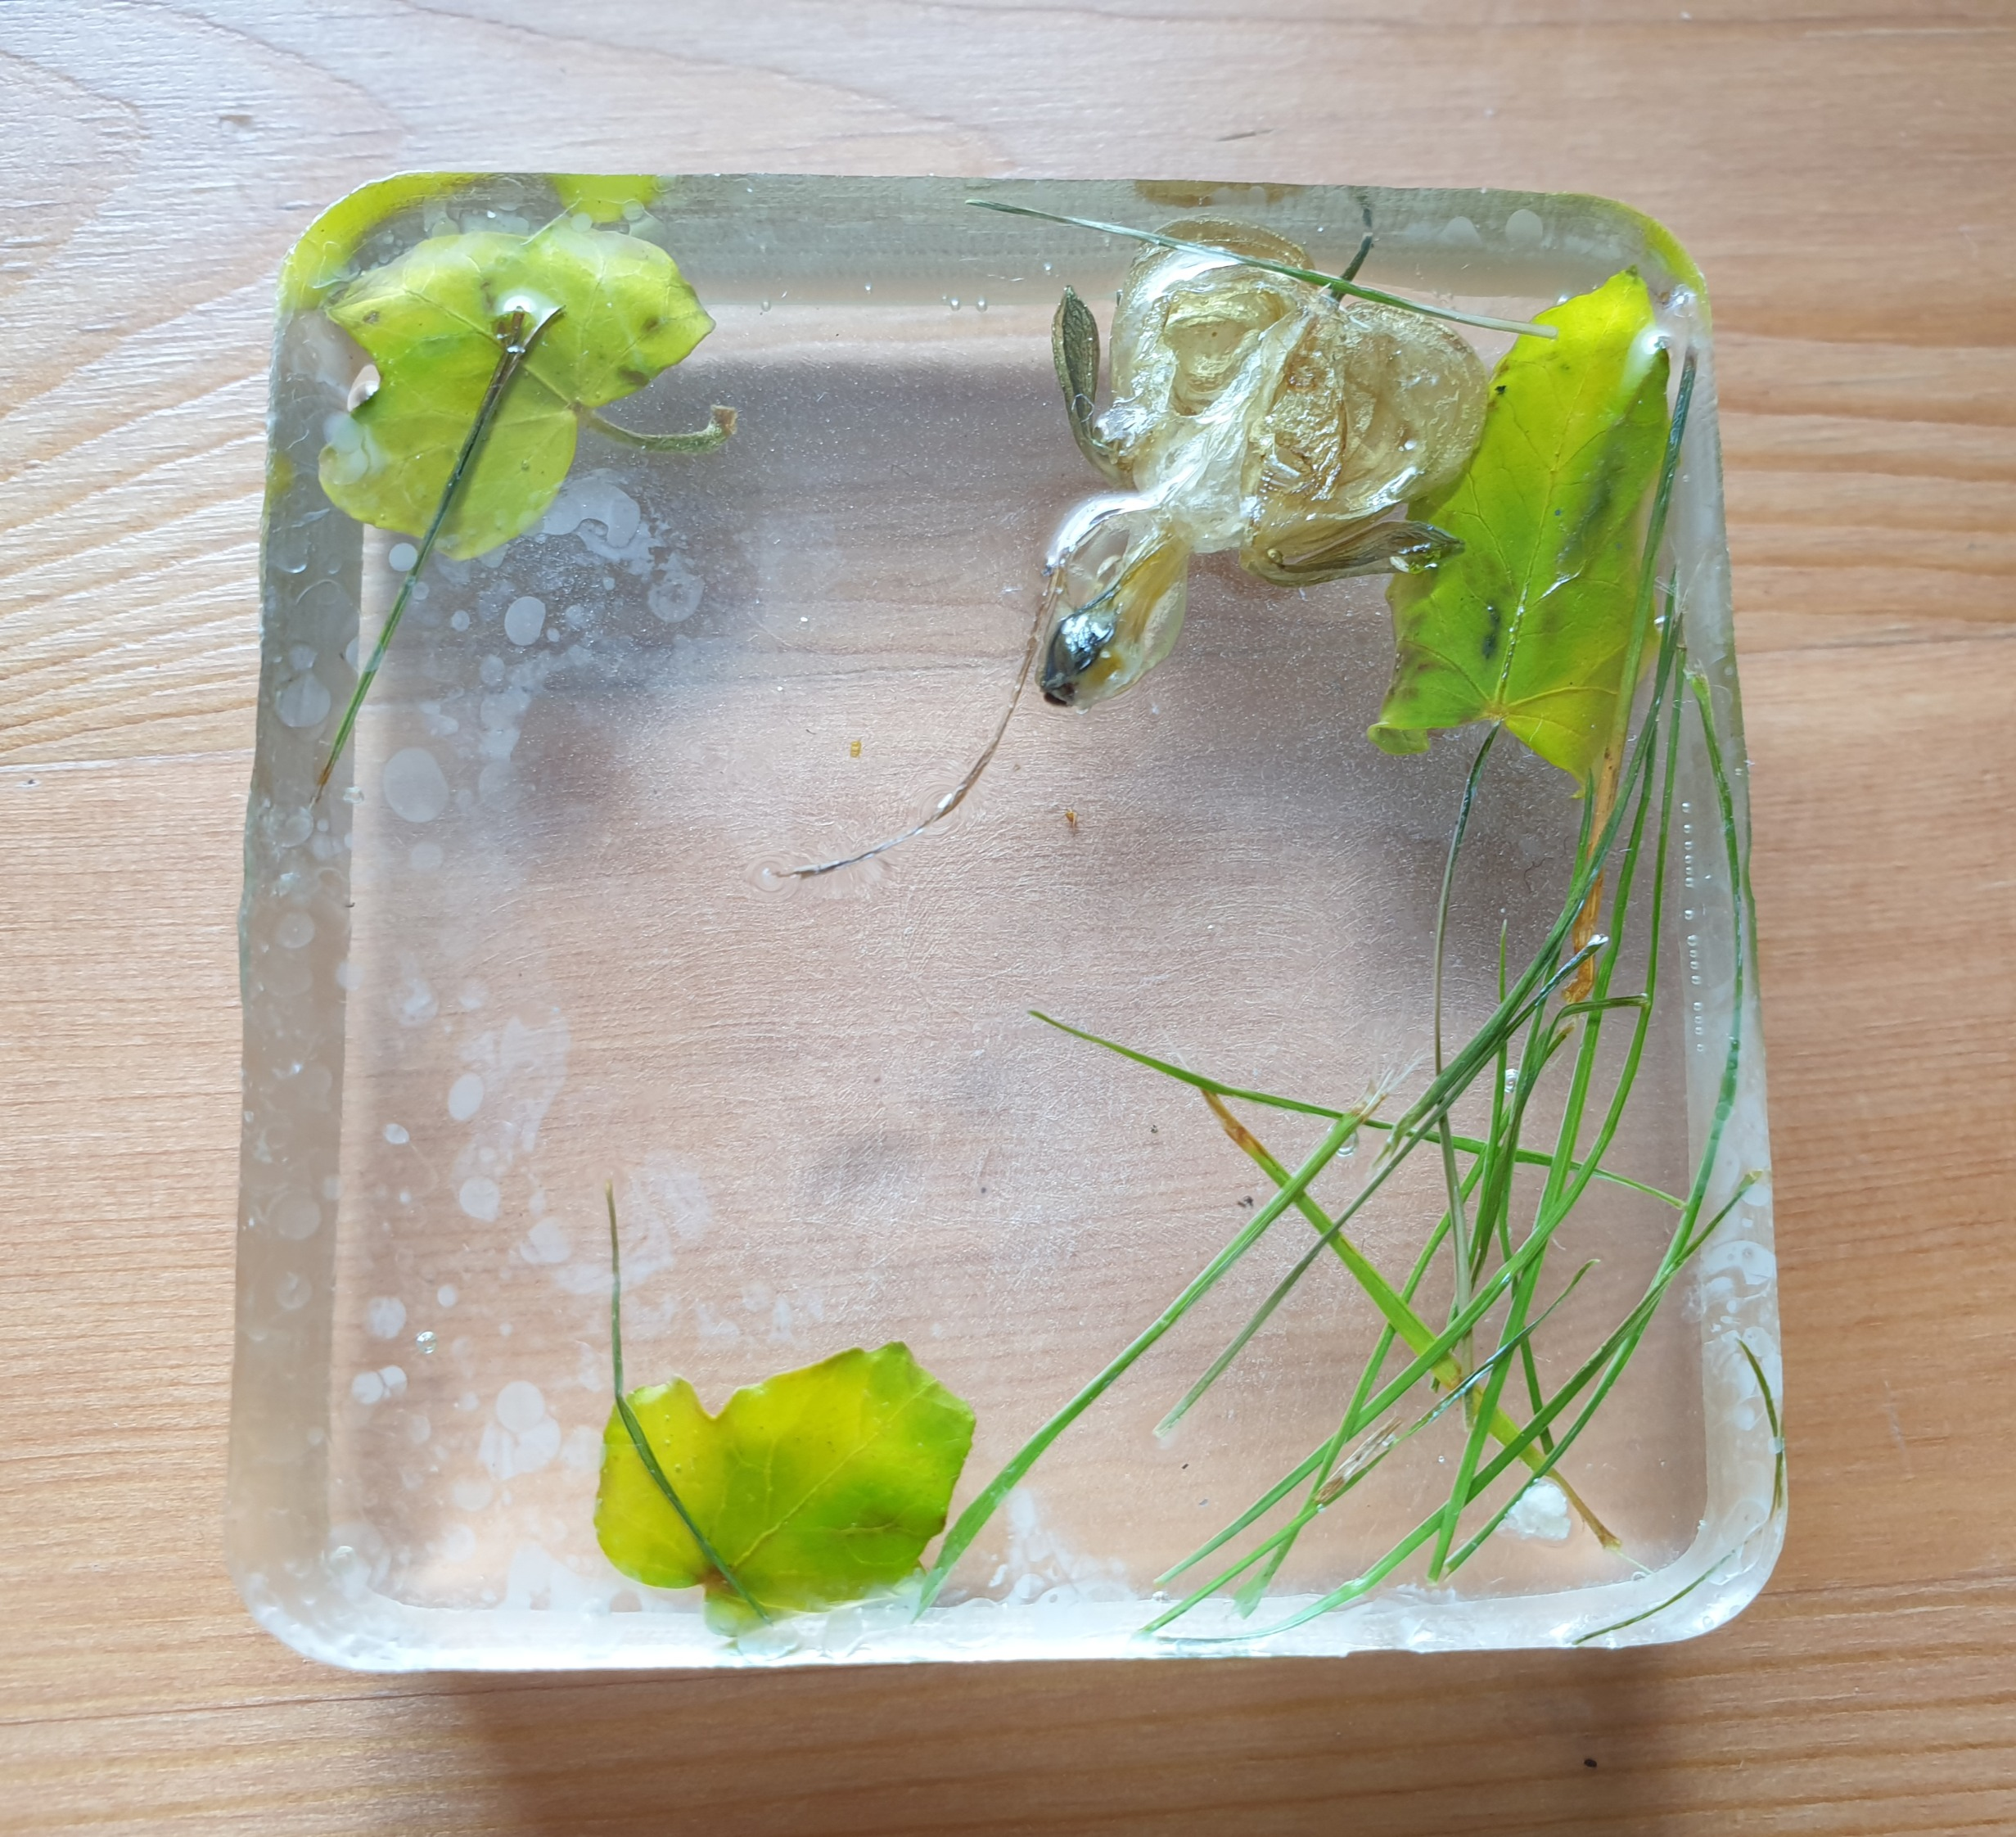 Holding and Containing (2020) - Resin and plants/weeds by Janine Moffat